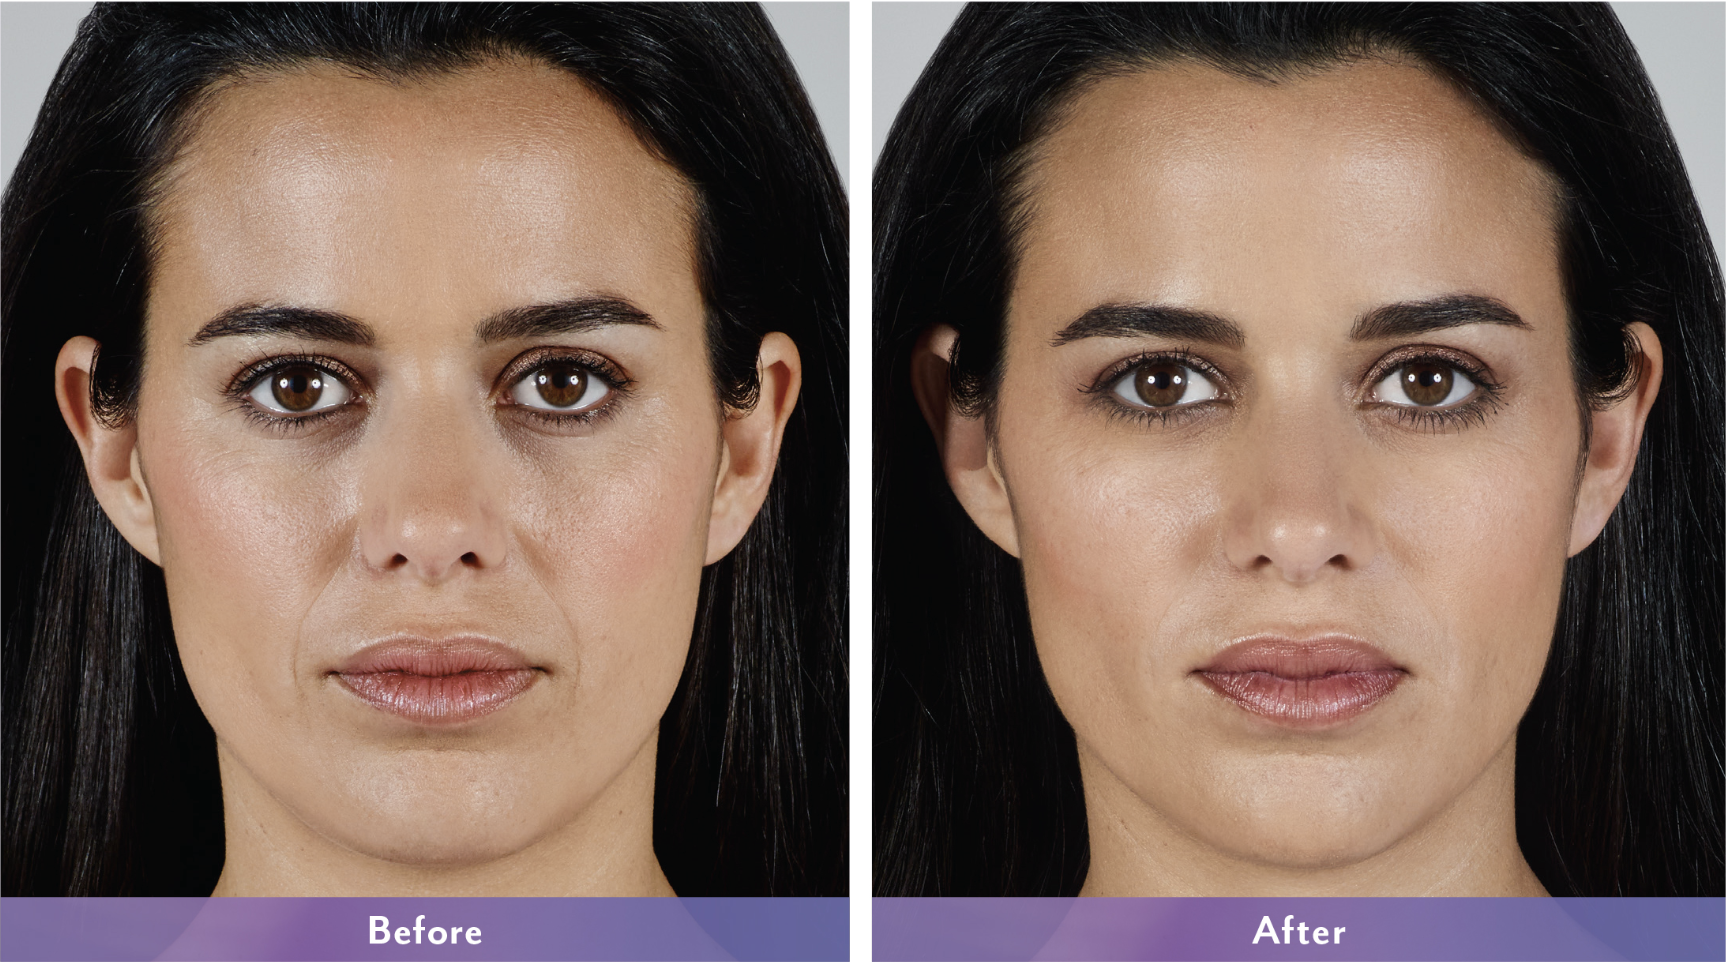 Before and After photos of Juvéderm Vollure XC patient